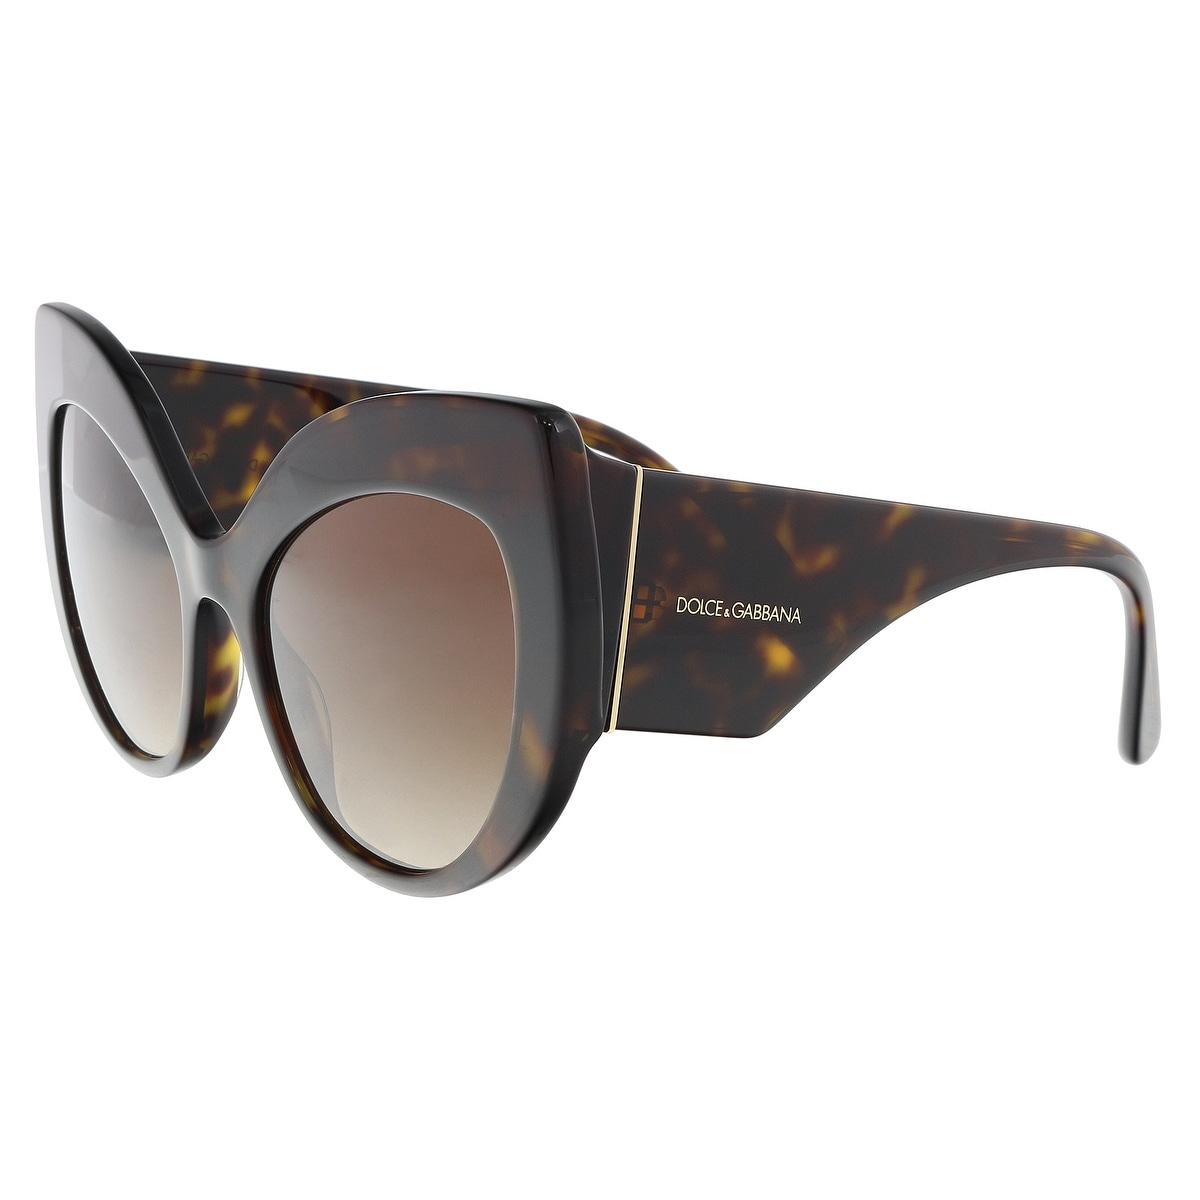 8396683a03f5 Shop Dolce & Gabbana DG4321 502/13 Havana Cat Eye Sunglasses - 55-20 ...